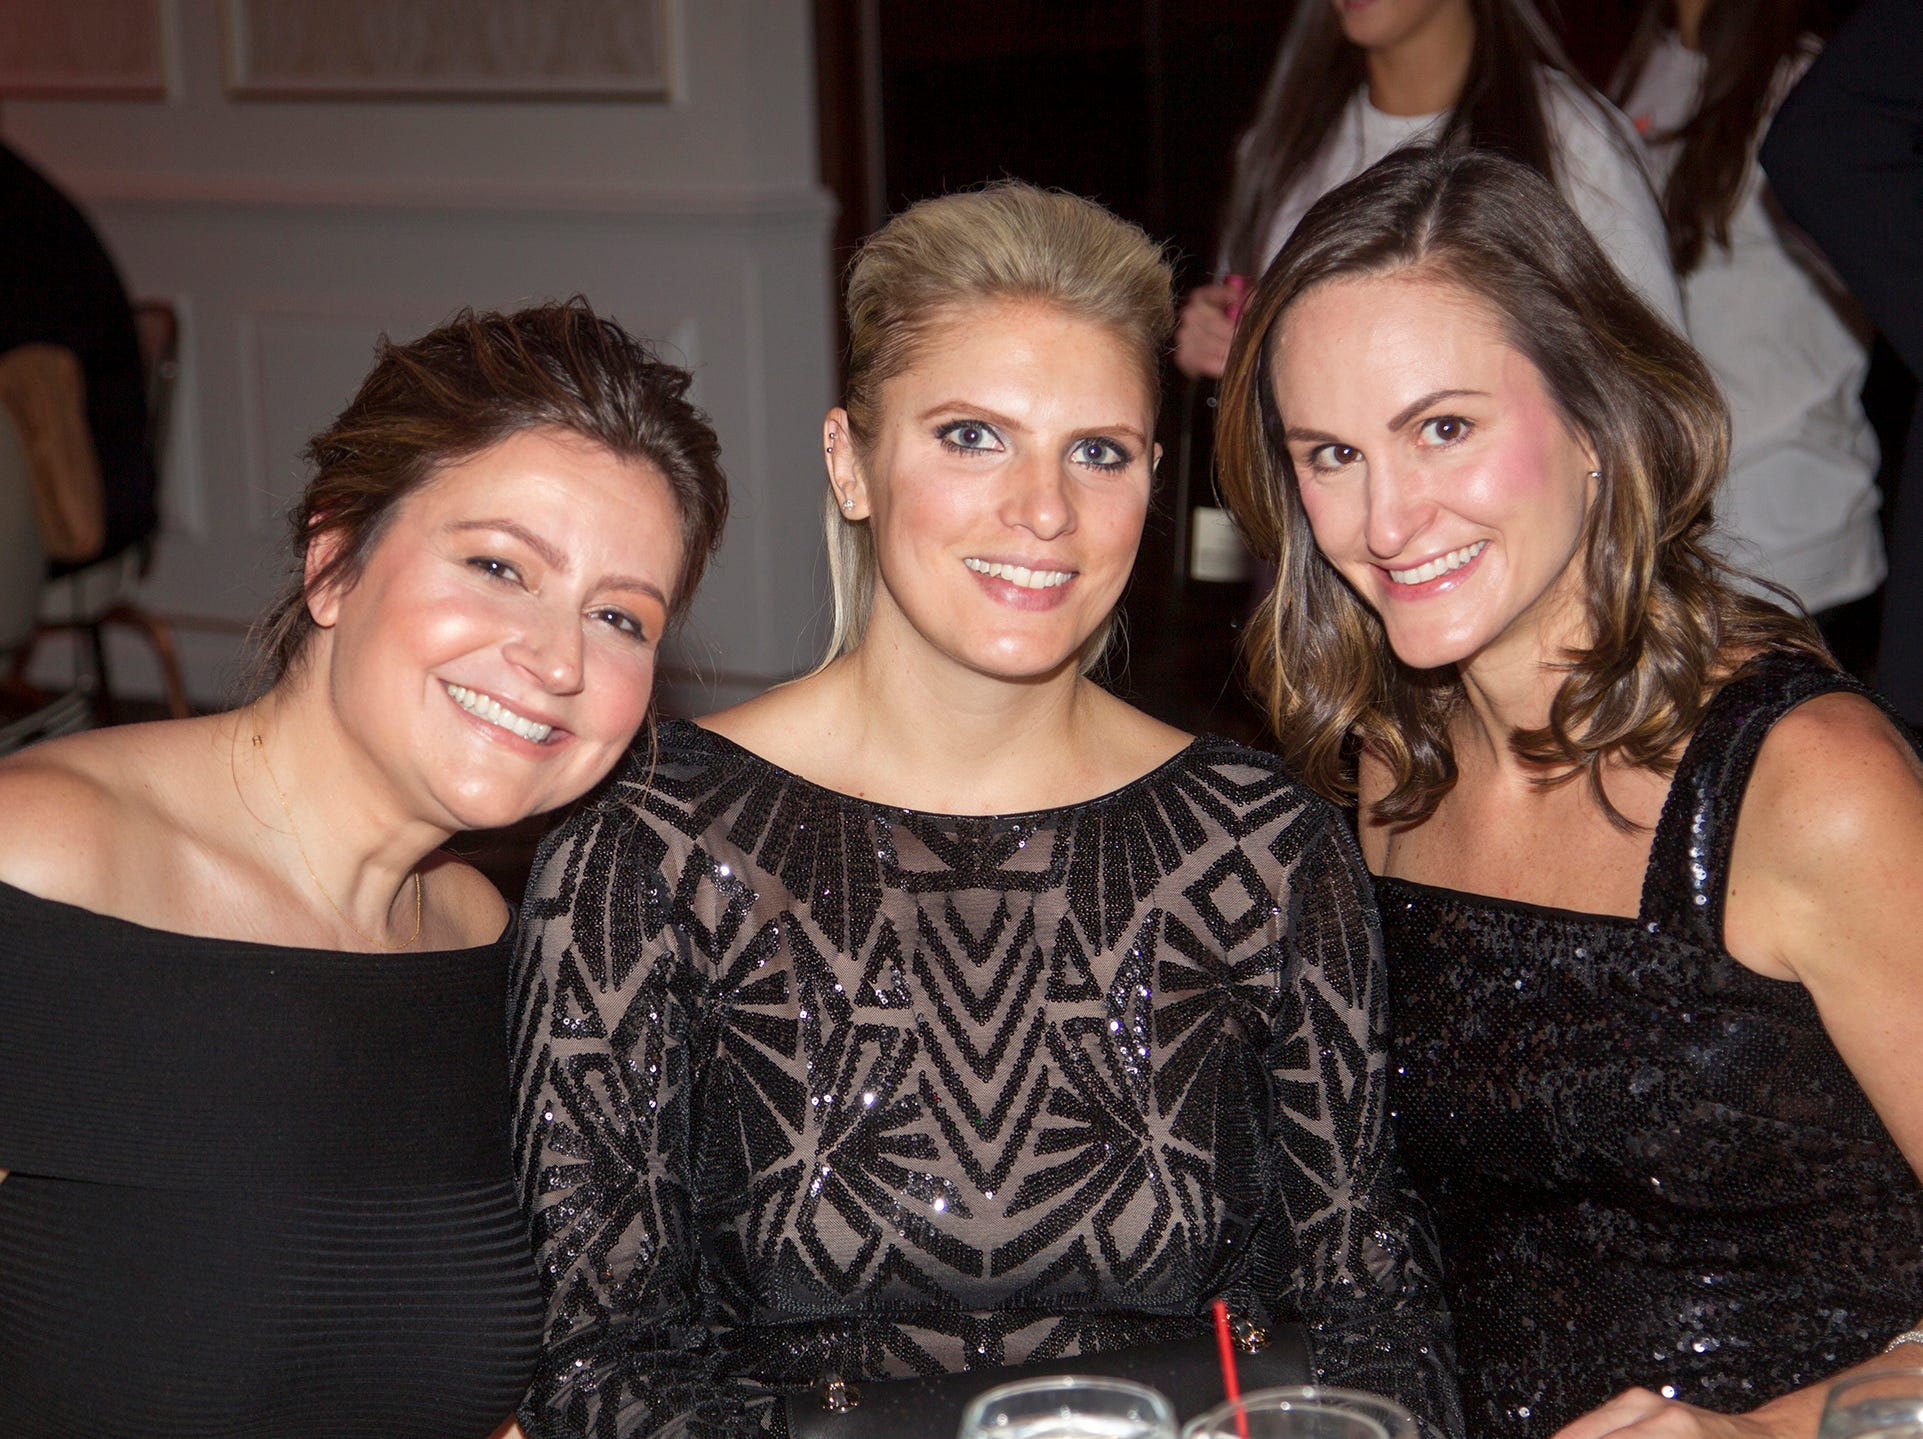 Kayla, Kelly, natalie. The 13th annual Julia's Butterfly Foundation Ball at Macaluso's in Hawthrorne. Julia's Butterfly Foundation is a volunteer 501 (c) 3 organization whose mission is to provide assistance to families of chronically and terminally ill children to improve their quality of life. 11/11/2018